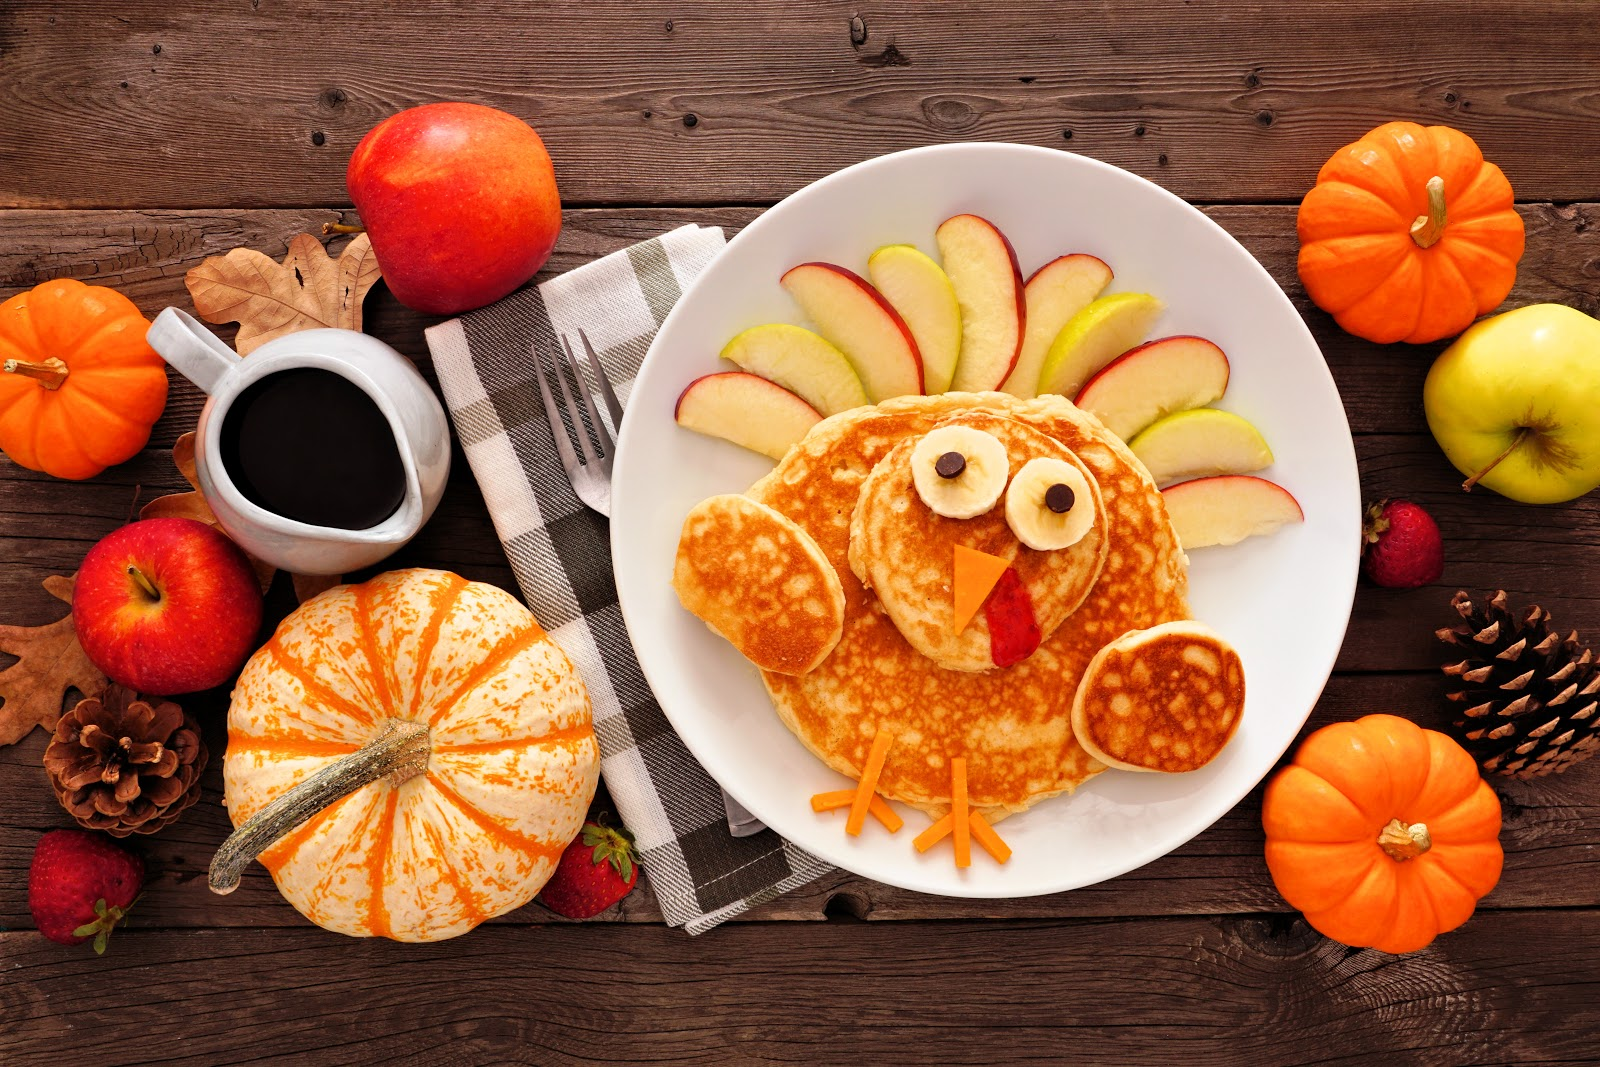 Non-traditional thanksgiving dinner ideas: Turkey-shaped pancakes with sliced apples